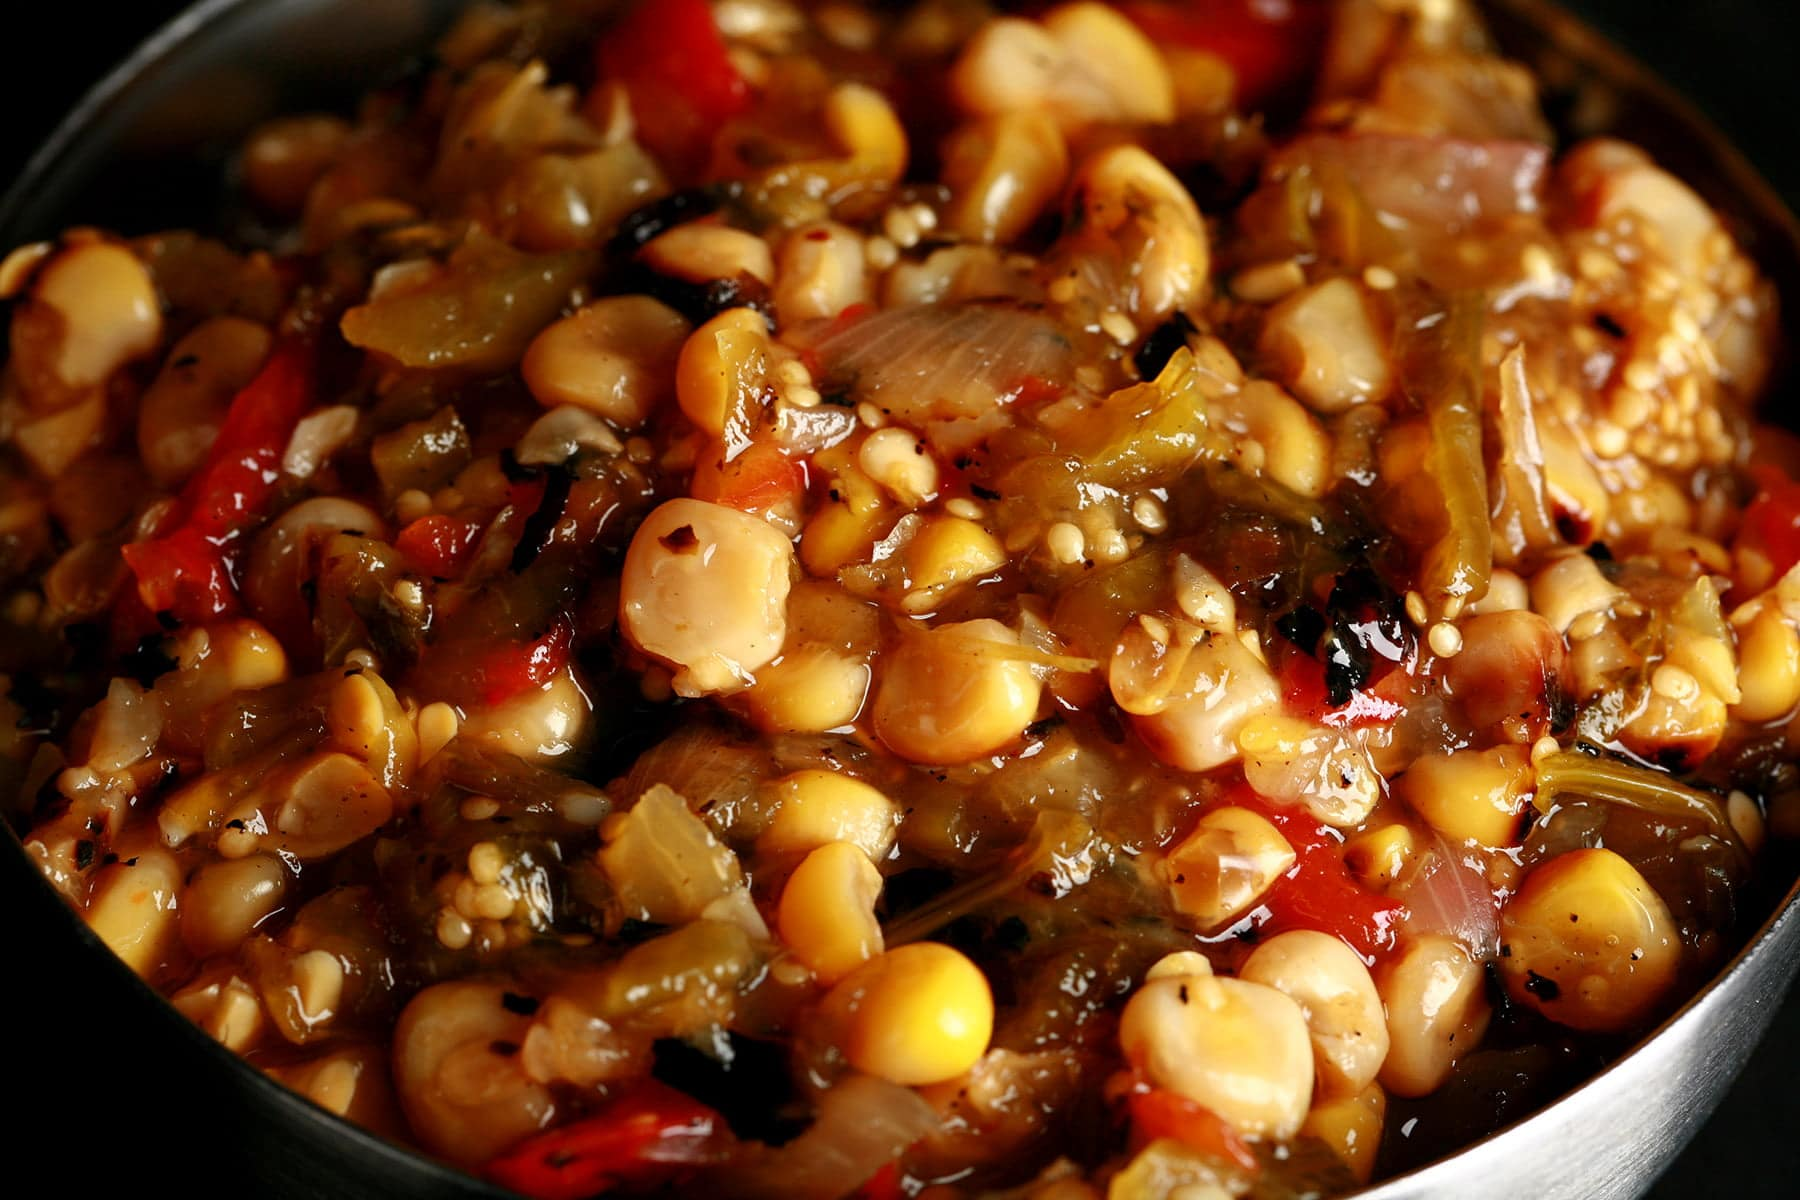 A close up view of a chunky roasted corn salsa verde - a green salsa with yellow corn and red peppers throughout.